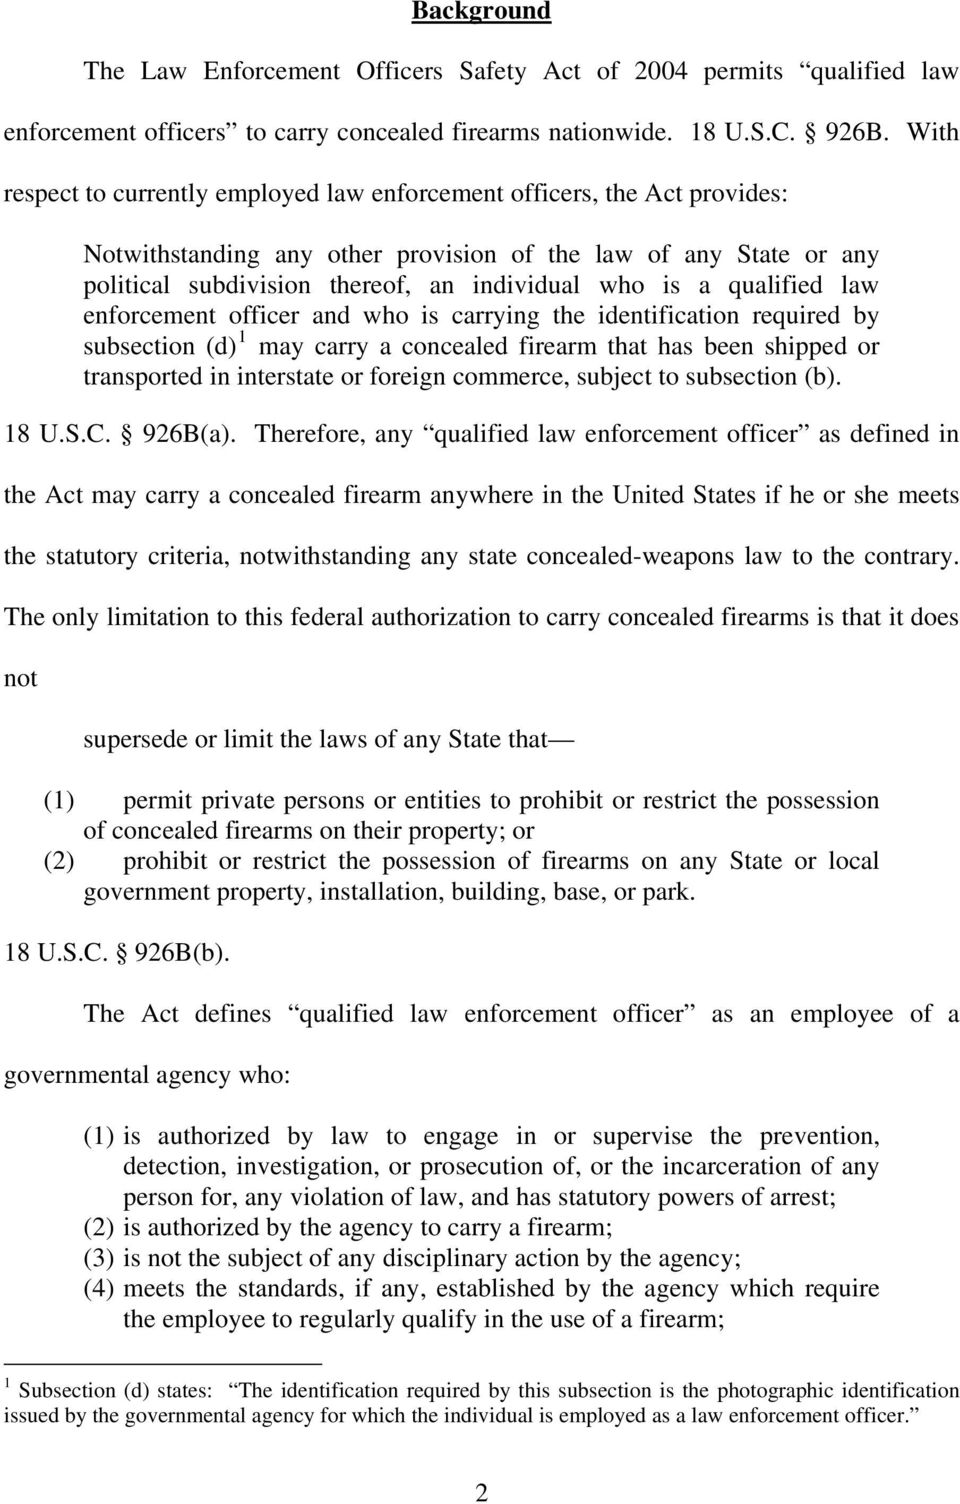 qualified law enforcement officer and who is carrying the identification required by subsection (d) 1 may carry a concealed firearm that has been shipped or transported in interstate or foreign